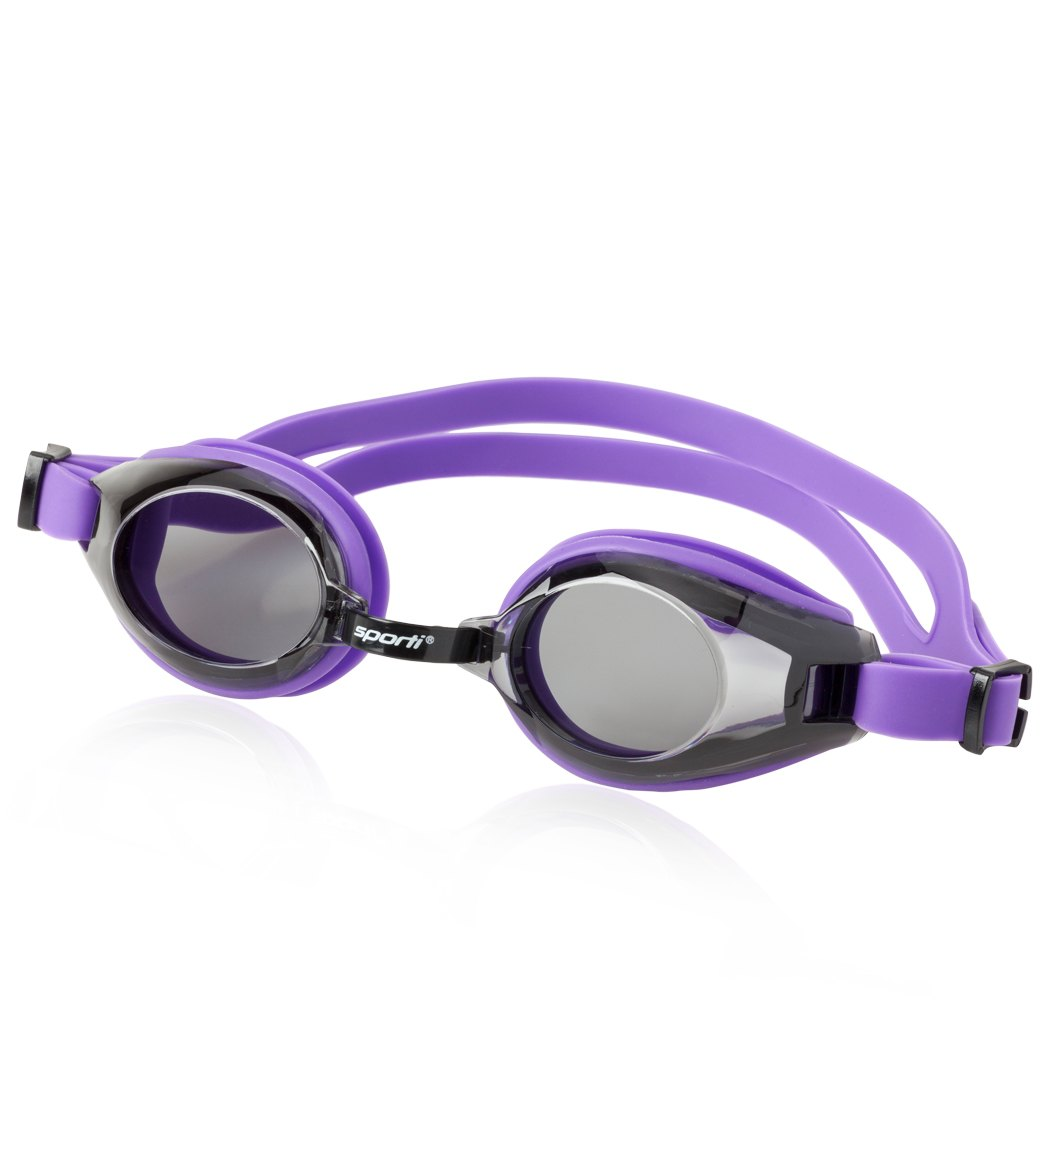 8b2ea77f88f Sporti Antifog Plus Goggle at SwimOutlet.com